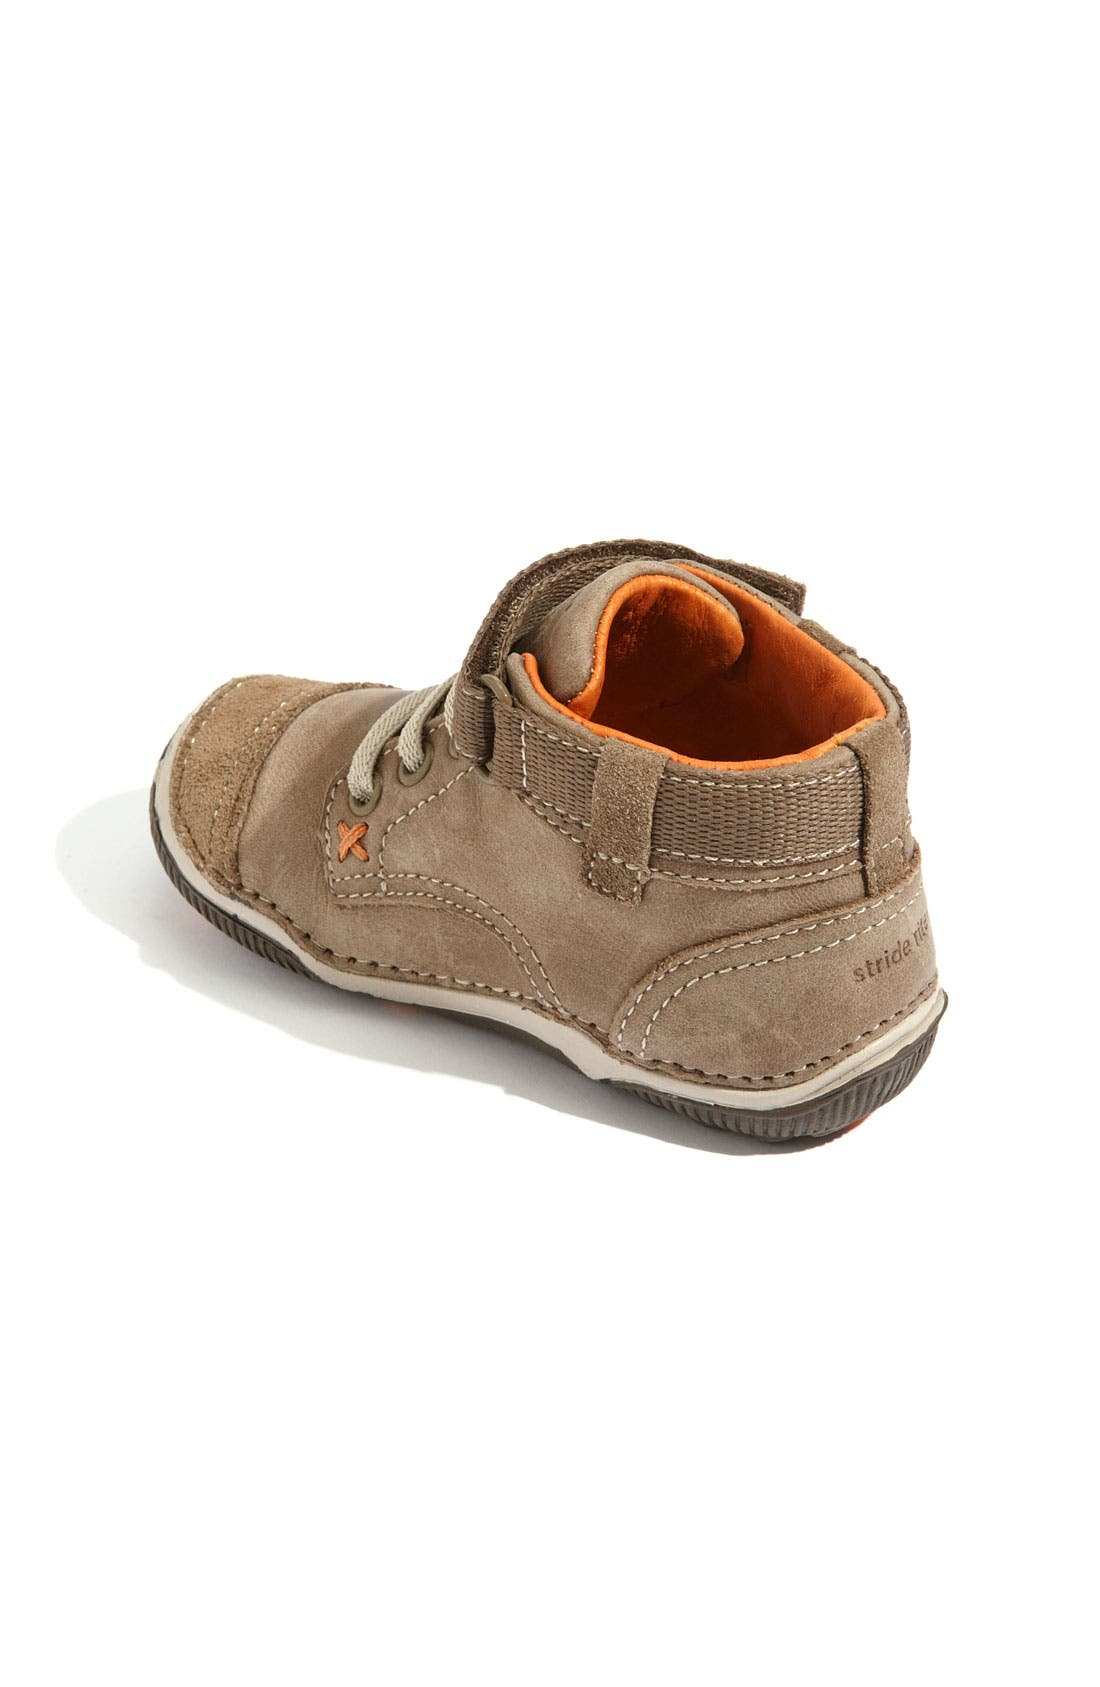 Alternate Image 2  - Stride Rite 'Garett' Shoe (Baby, Walker & Toddler)